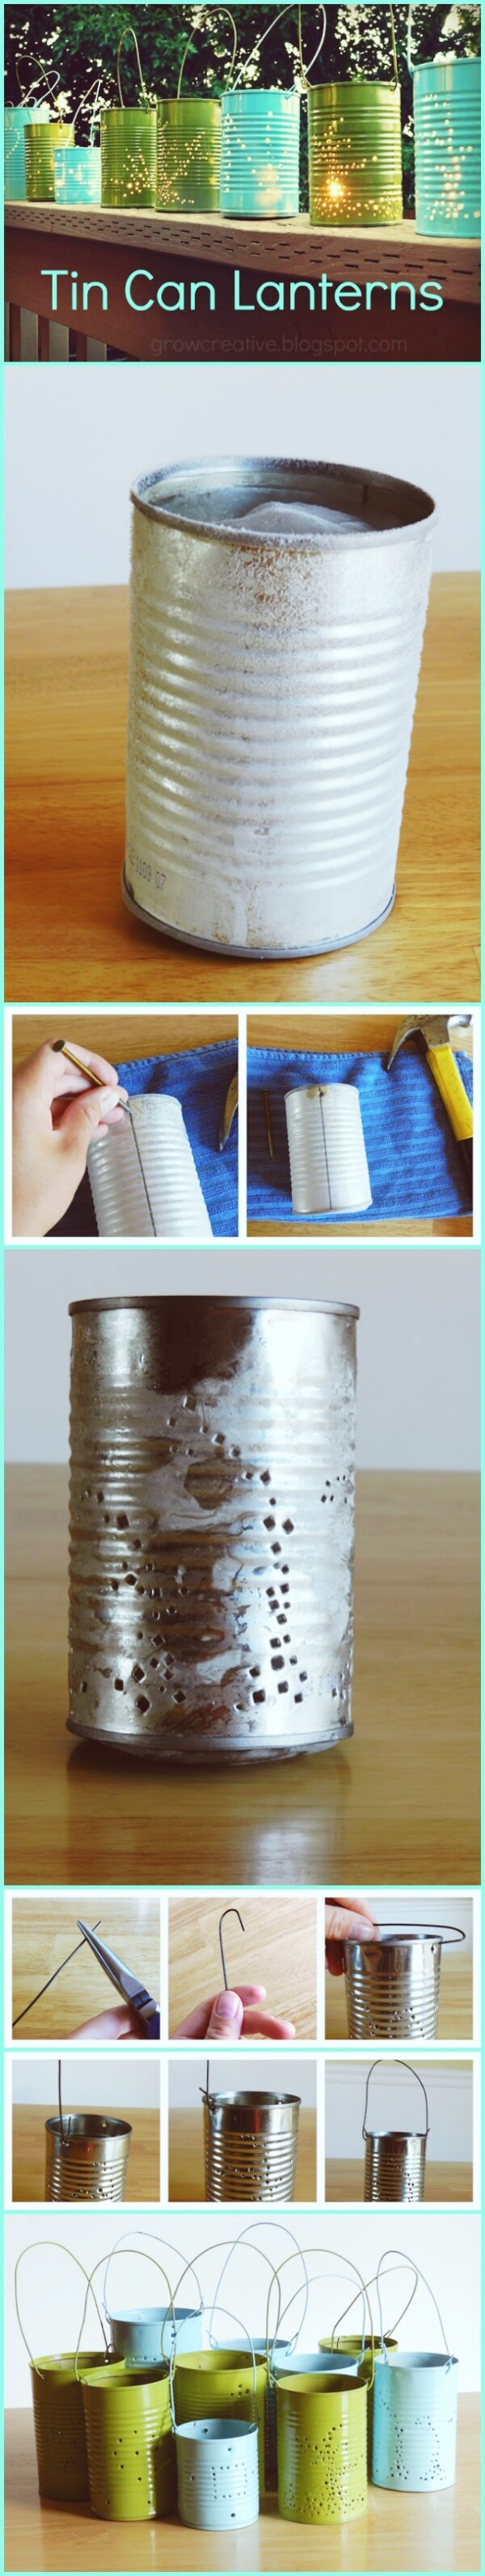 Tin Can Lantern | Creative DIY Garden Lantern Ideas - FarmFoodFamily.com